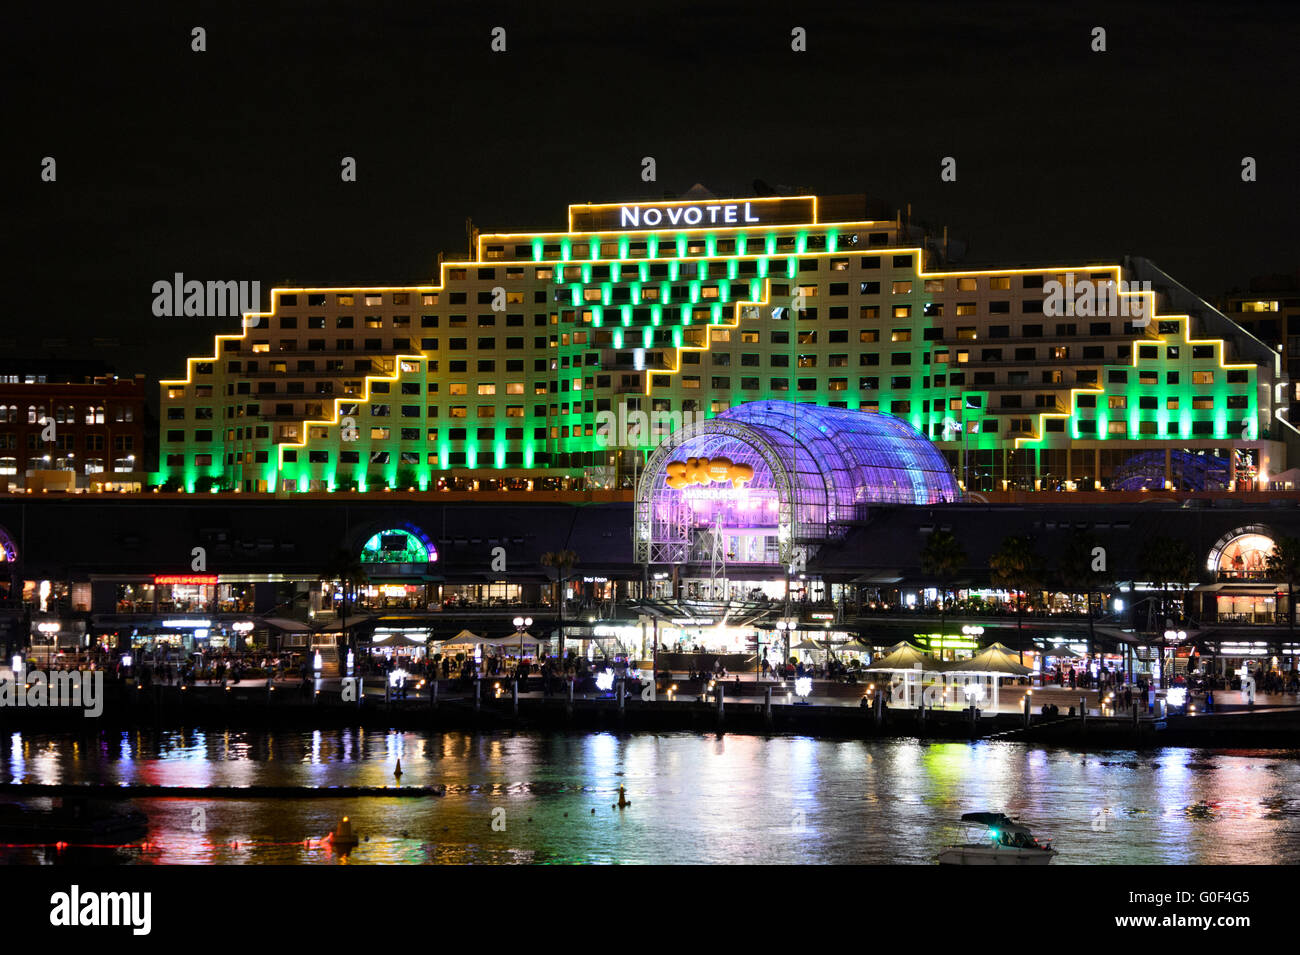 Hotel Novotel is illuminated during Vivid Festival, Darling Harbour, Sydney, New South Wales, Australia - Stock Image